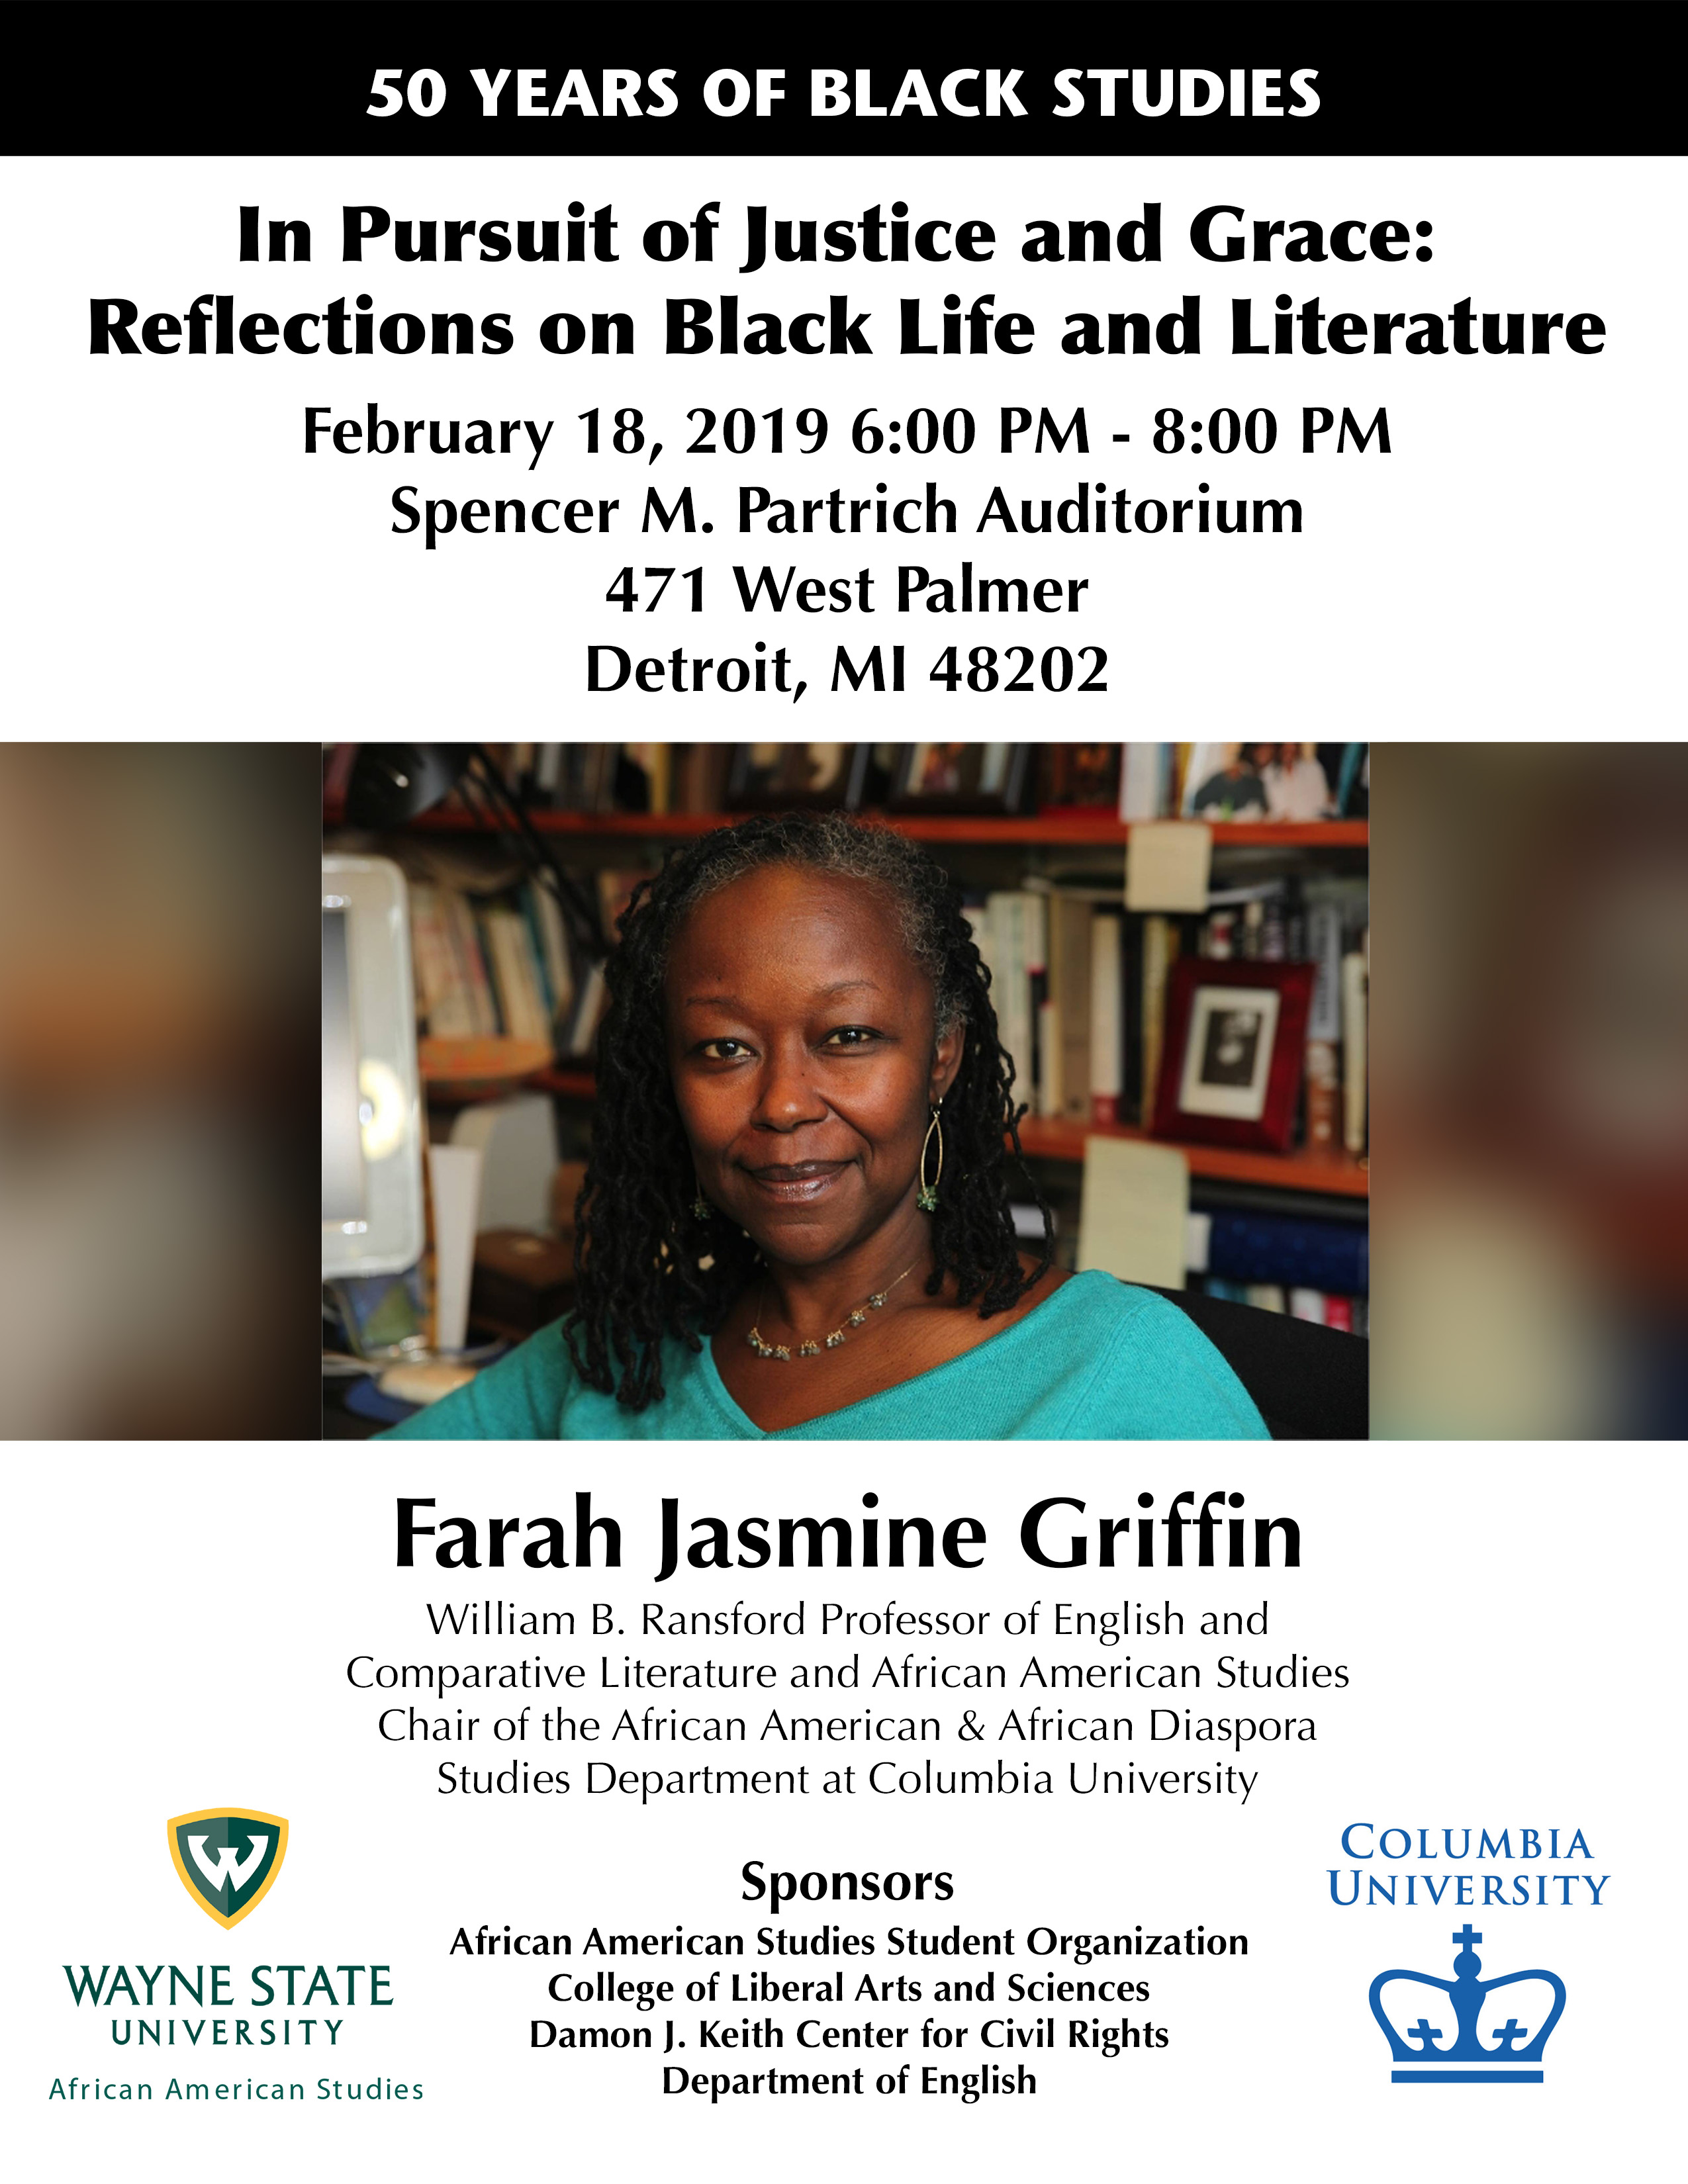 In Pursuit of Justice and Grace: Reflections on Black Life and Literature